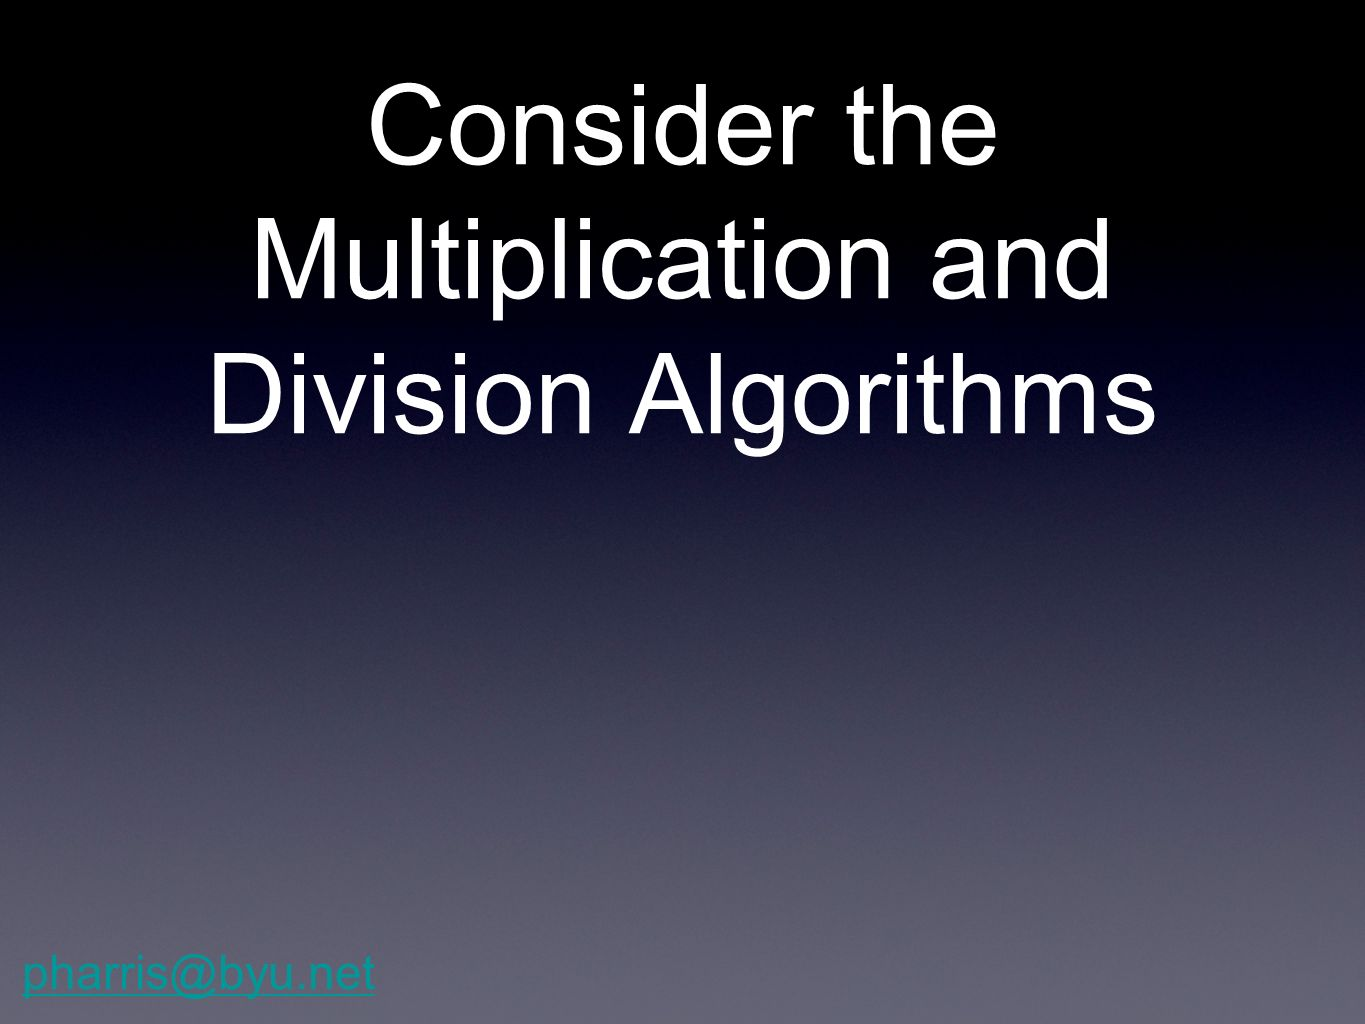 Consider the Multiplication and Division Algorithms